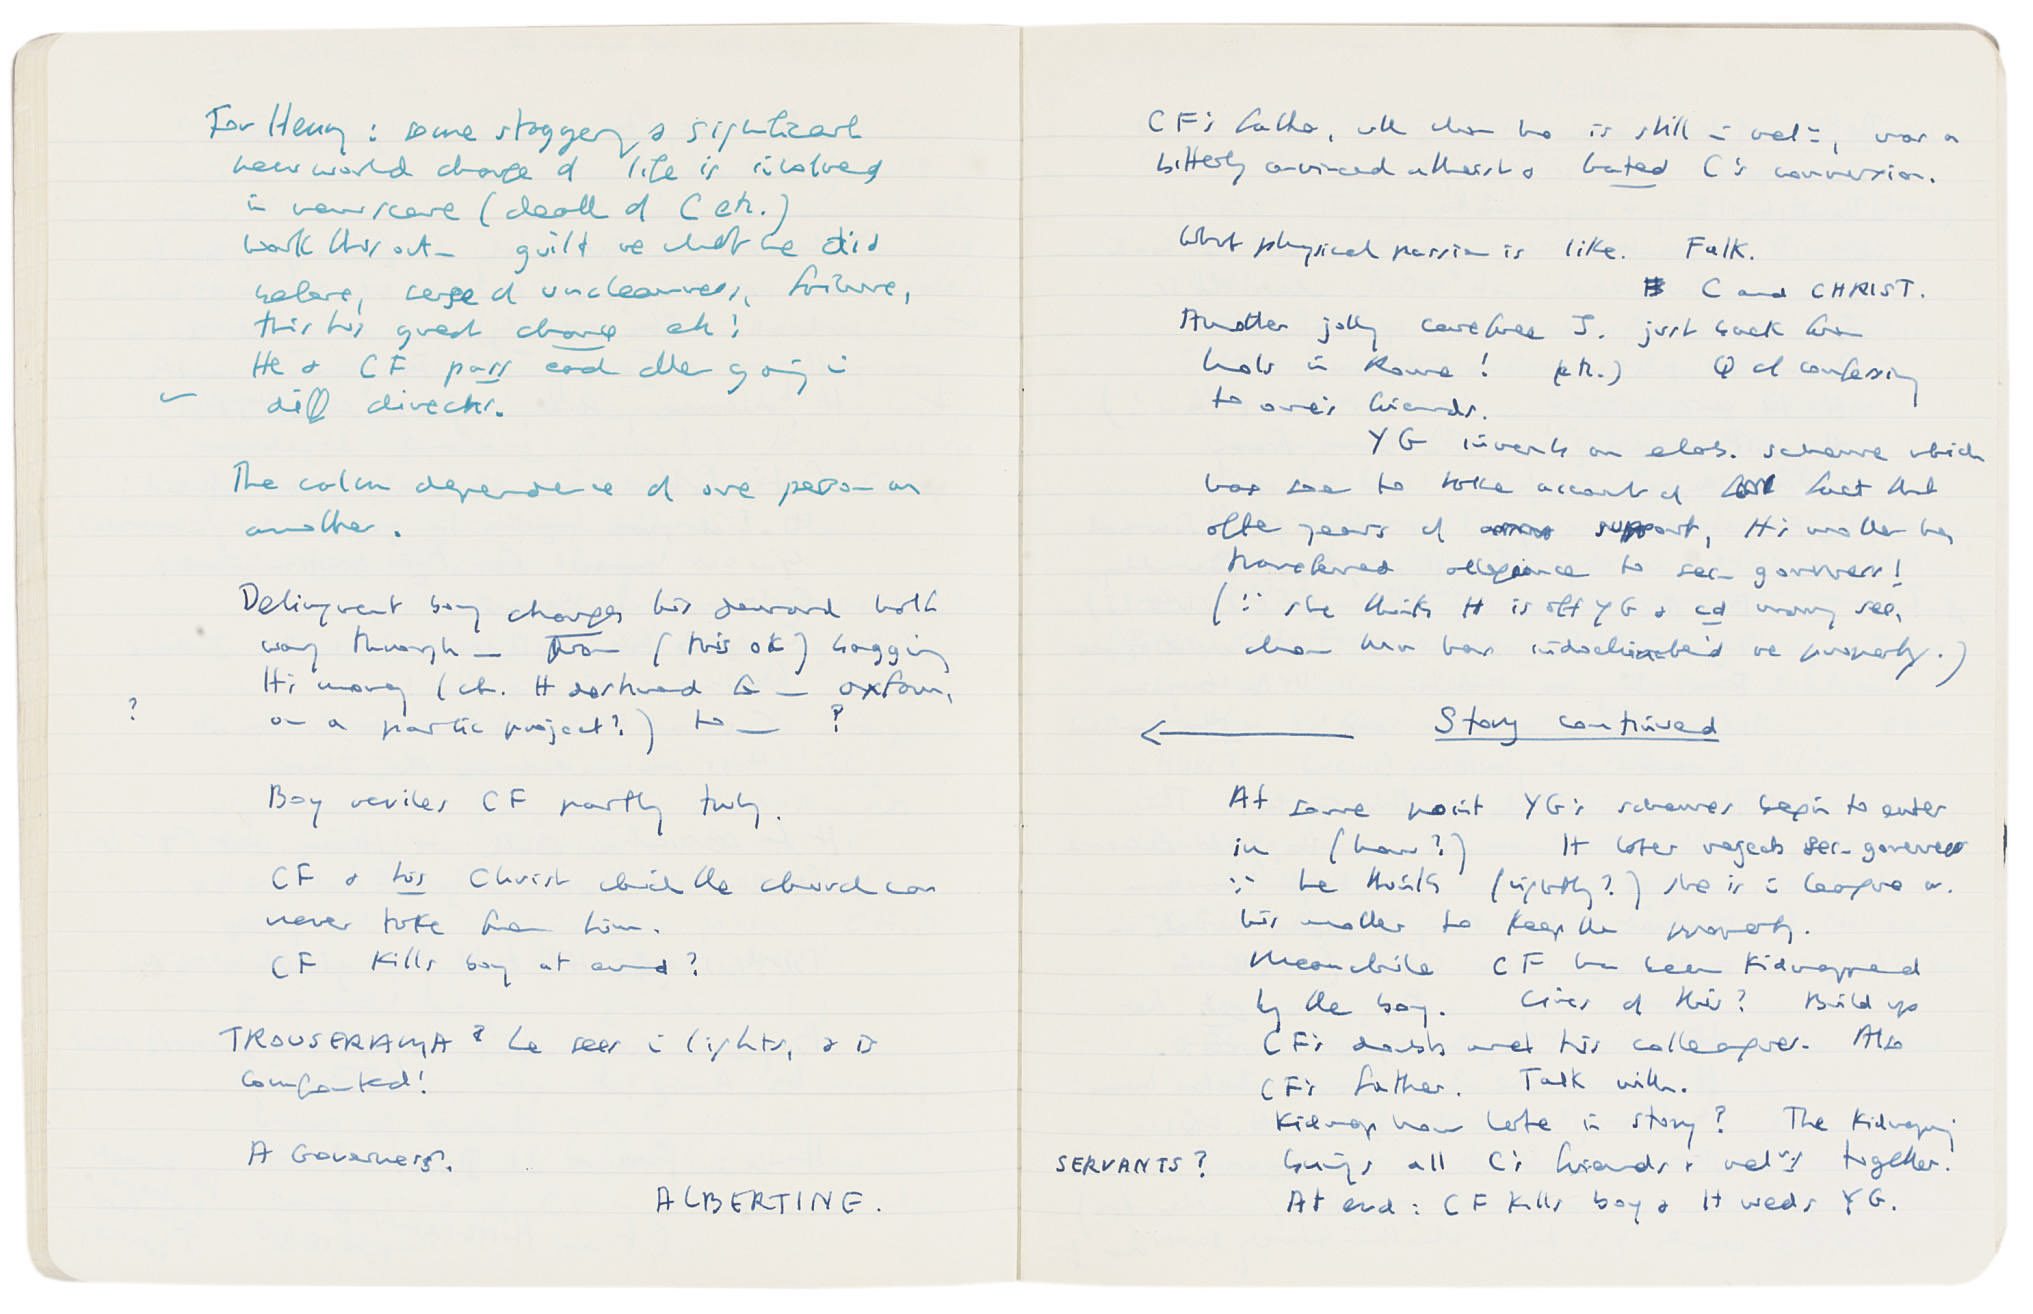 MURDOCH, Dame Iris (1919-1999). Two autograph manuscript notebooks, each entitled 'Notes for Novel', one signed ('Iris Murdoch'), the first, numbered 'IX', containing notes for The Nice and the Good, comprising 'Plan V' and a series of 'Questions' (in fact drafts in note form) numbered 1-12, followed by (ff.26-80) an extensive section of the continuous draft, Steeple Aston, some sections dated 22 January - 20 February 1966, the second containing notes for Henry and Cato, the majority comprising unstructured memoranda, on a number of occasions revising 'Characters so far' or 'Possible story so far' (later simply 'Story'), as well as 'Problems' and other headings, Cedar Lodge, Steeple Aston, and Little Cheney, some sections dated 12 April - 10 August 1974, 80 + 80 leaves, 4to (252 x 200mm), in exercise books, stiff paper covers. Provenance: sold by Murdoch to the present proprietor as part of the contents of her house in Steeple Aston.